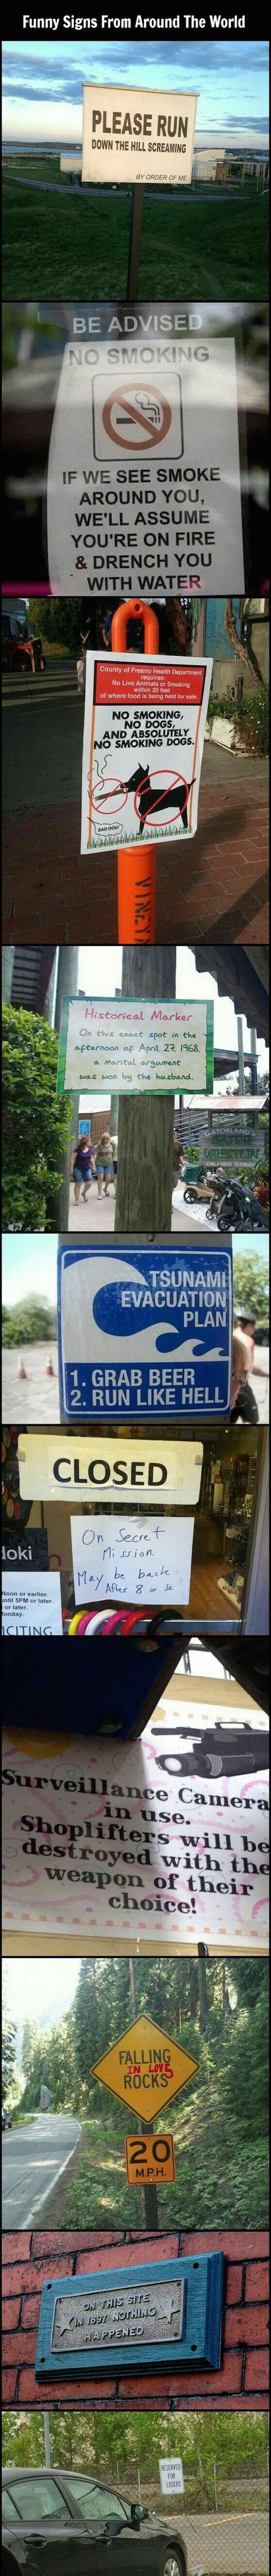 silly pictures of funny signs from around the world